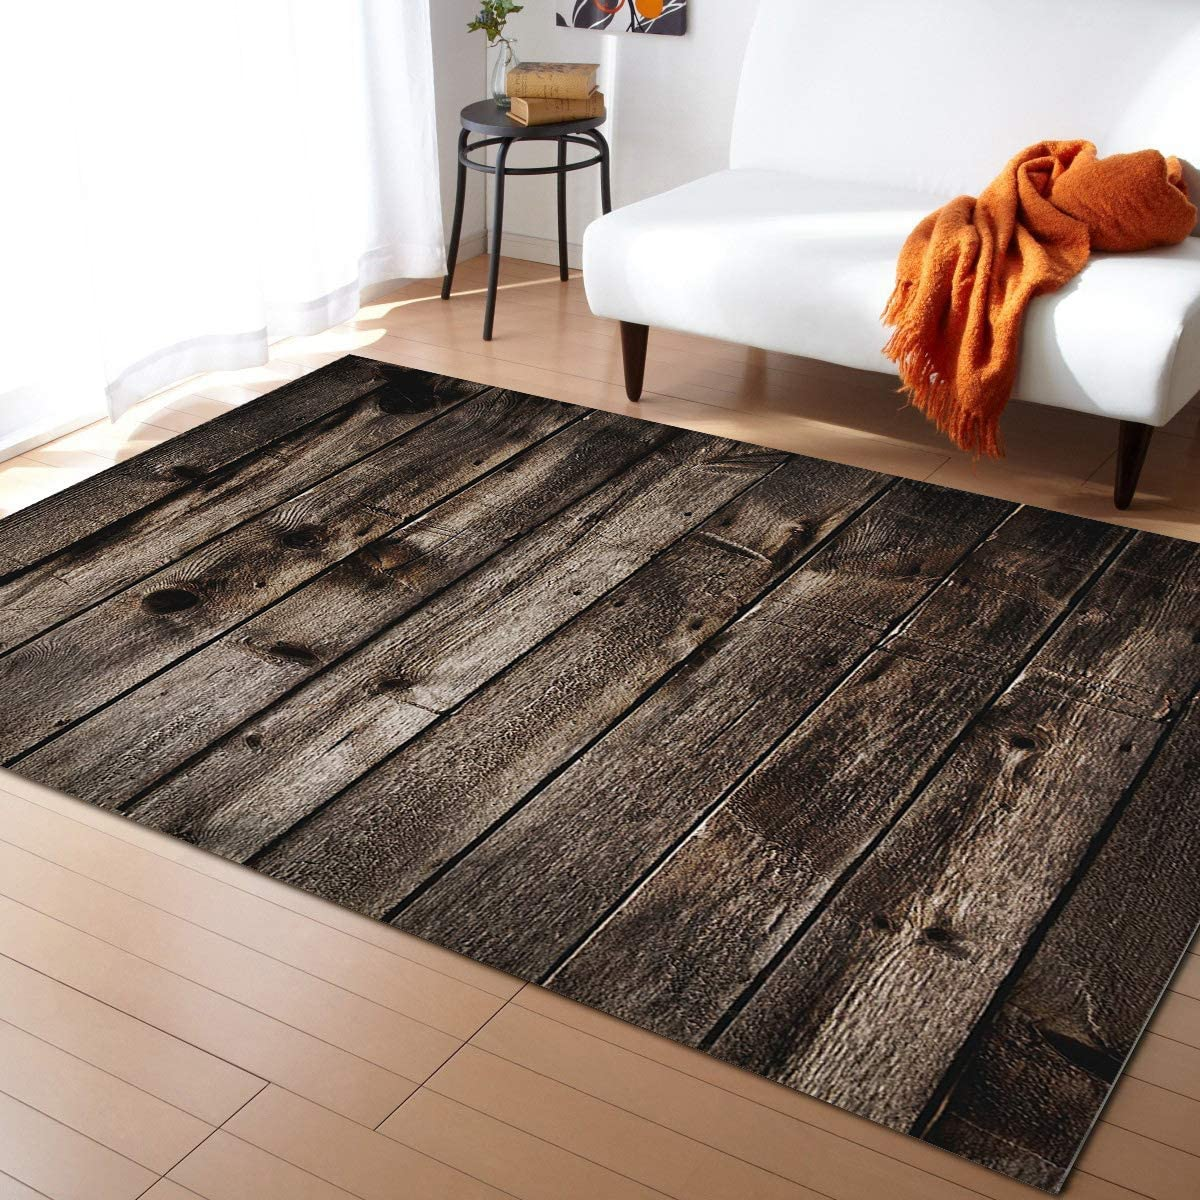 KITHOME Contemporary Non-Slip Area Rug Printed Grain Simple Wood Challenge Max 46% OFF the lowest price